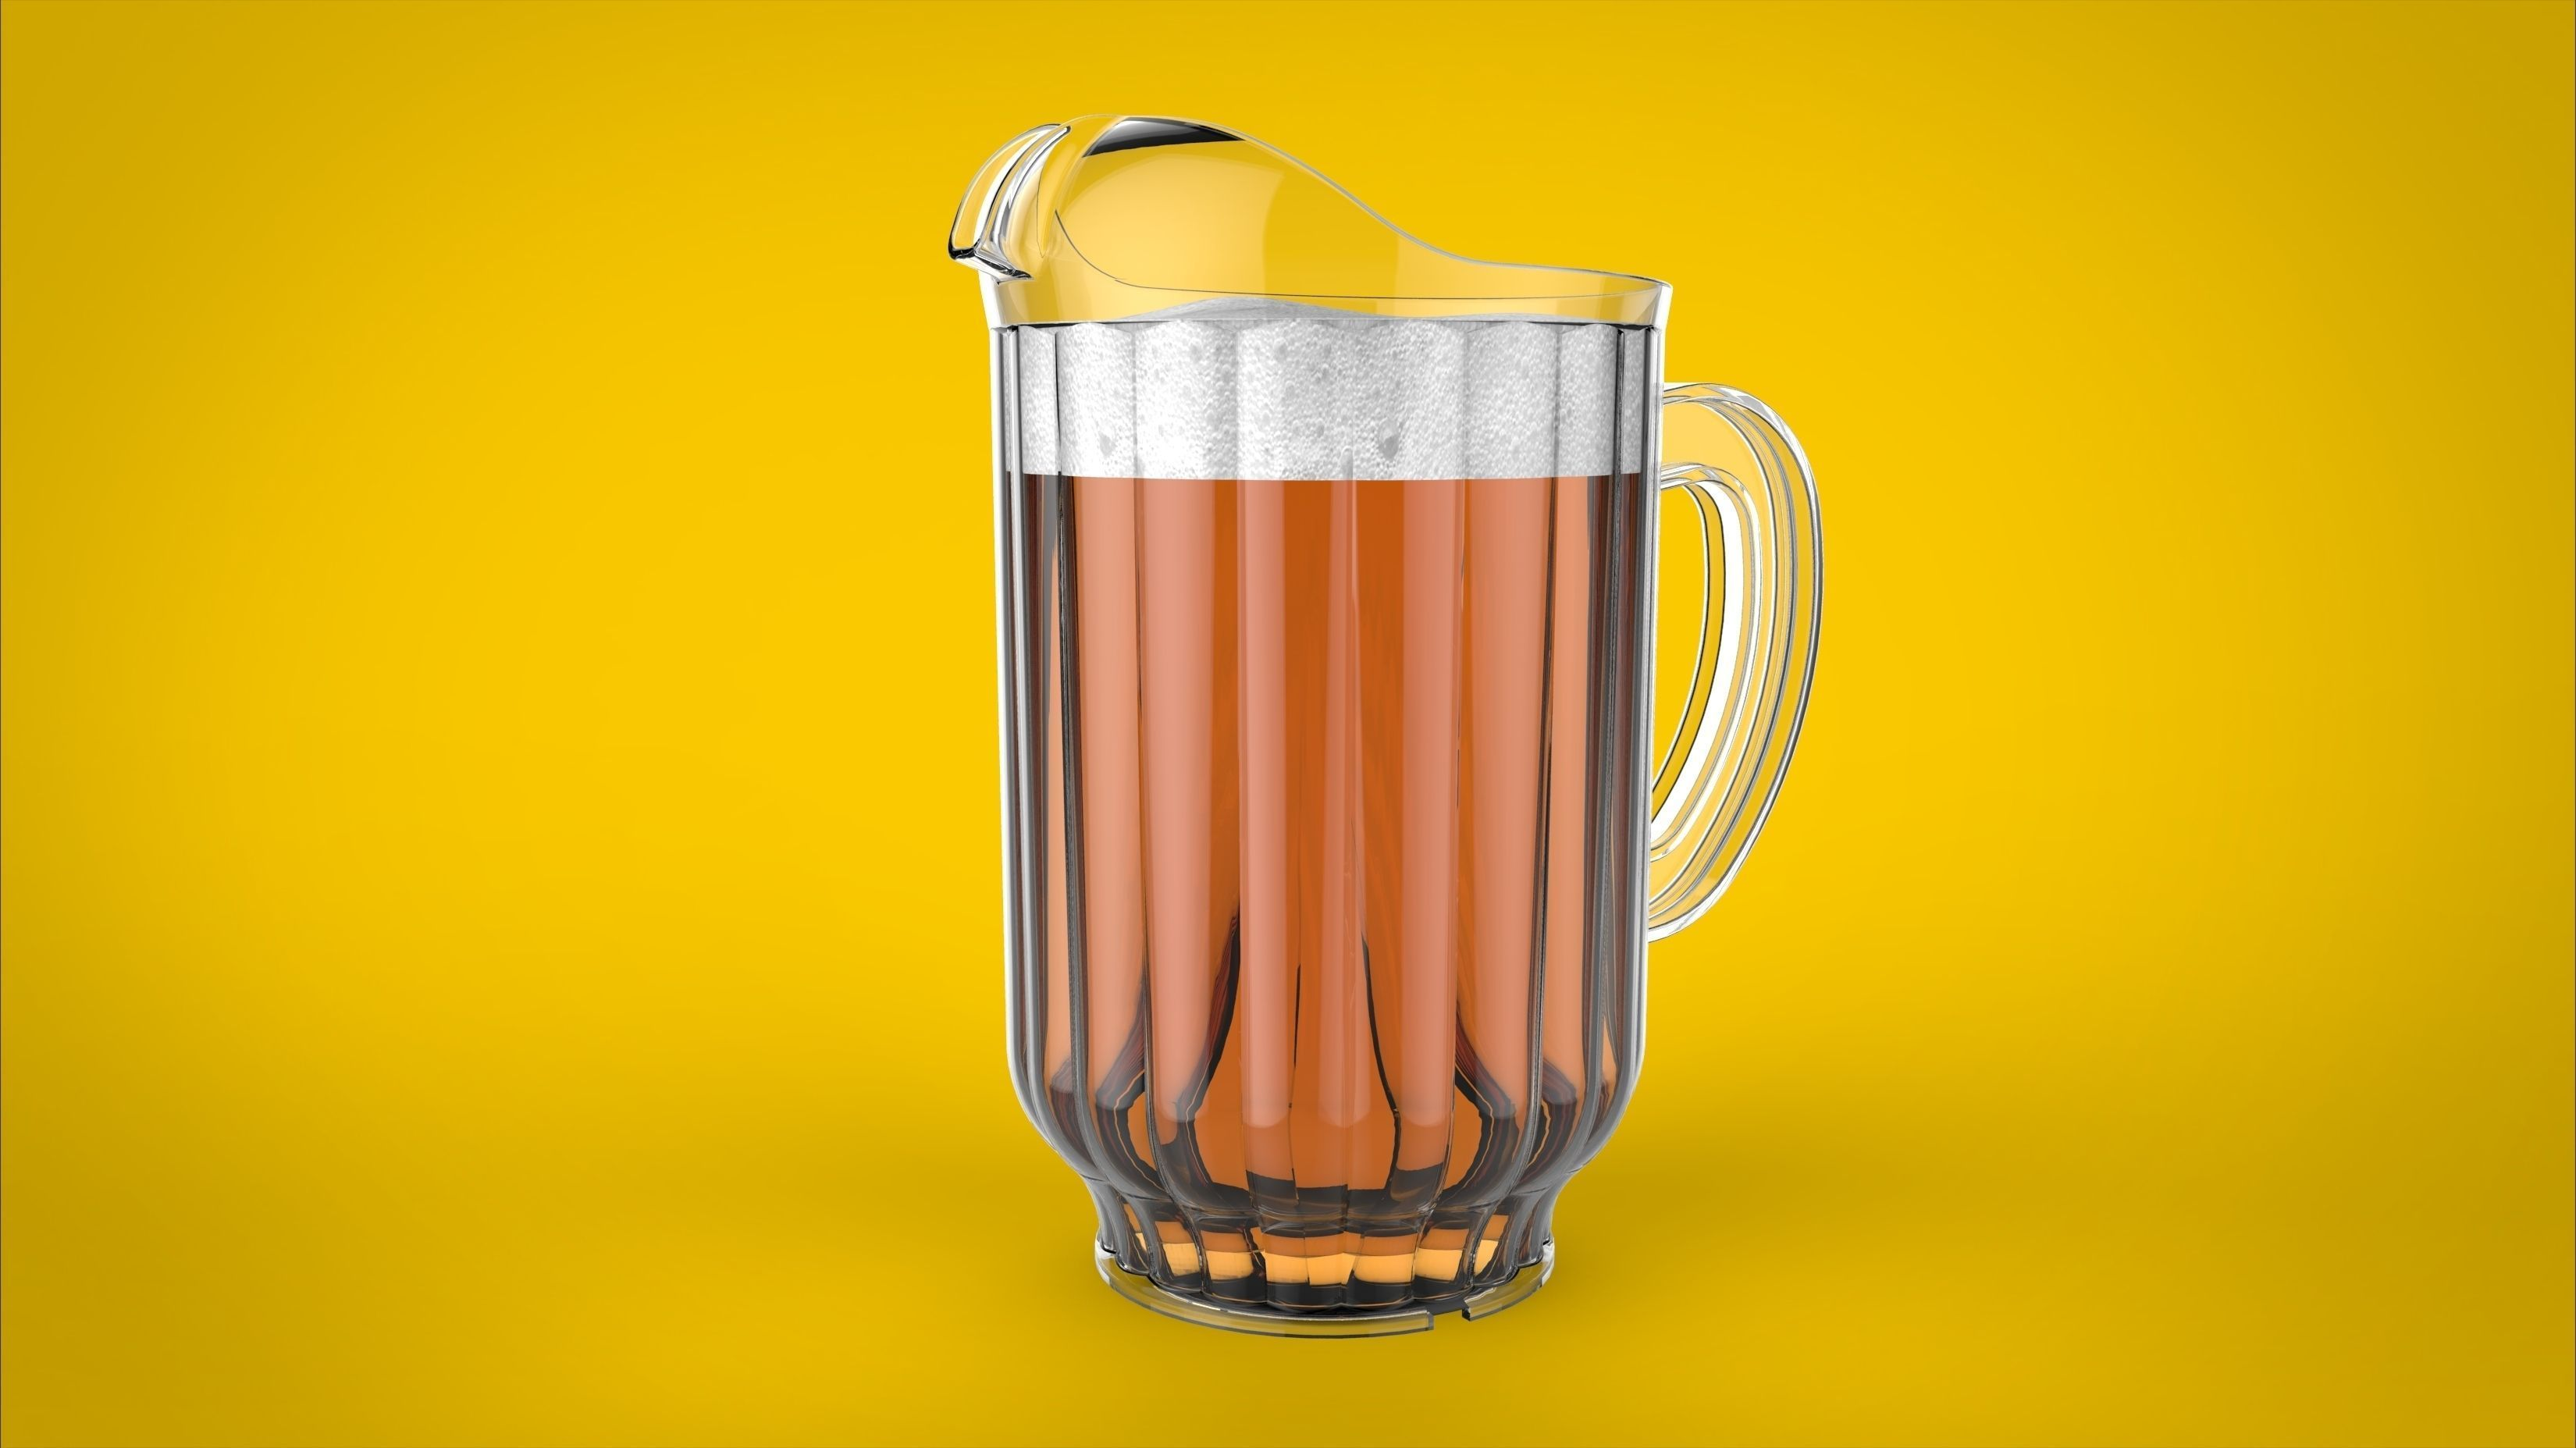 Beer pitcher free 3d model sldprt sldasm slddrw Free 3d